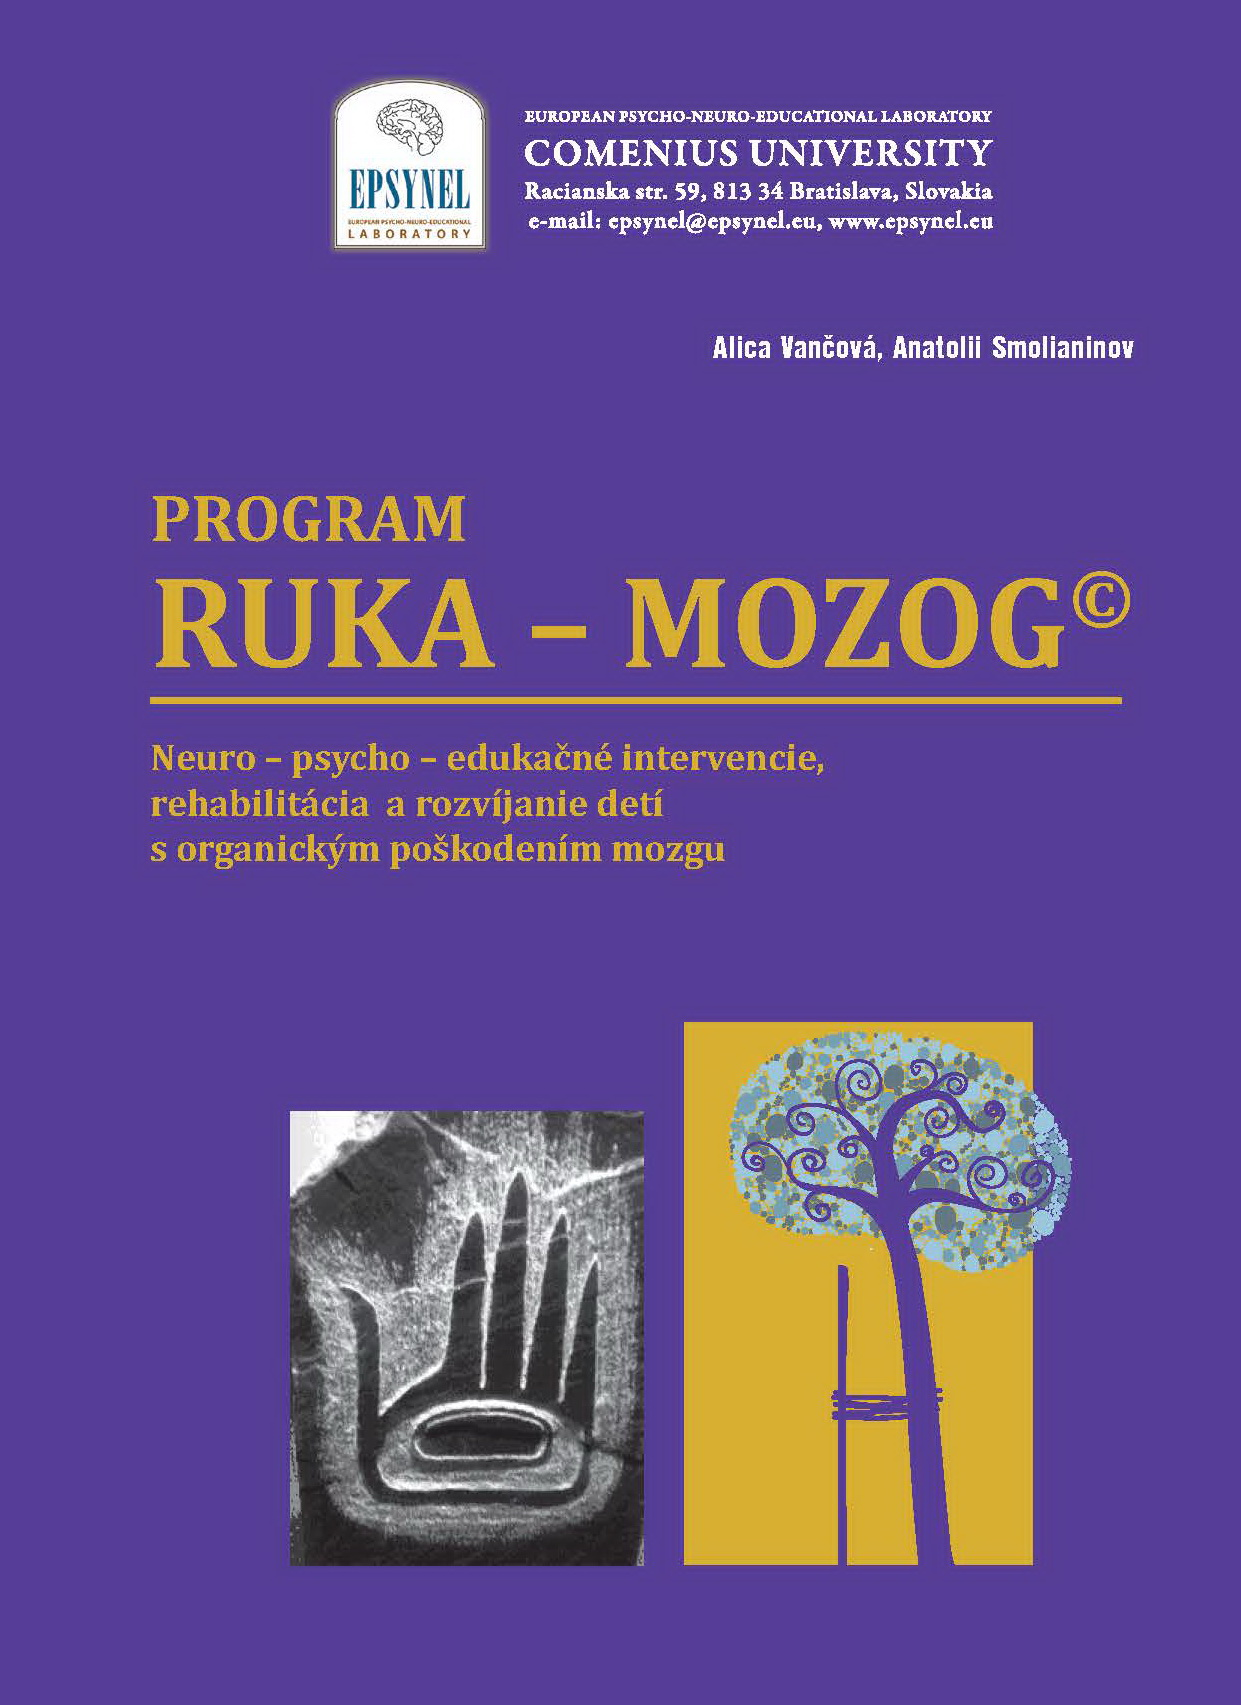 Program Ruka-Mozog